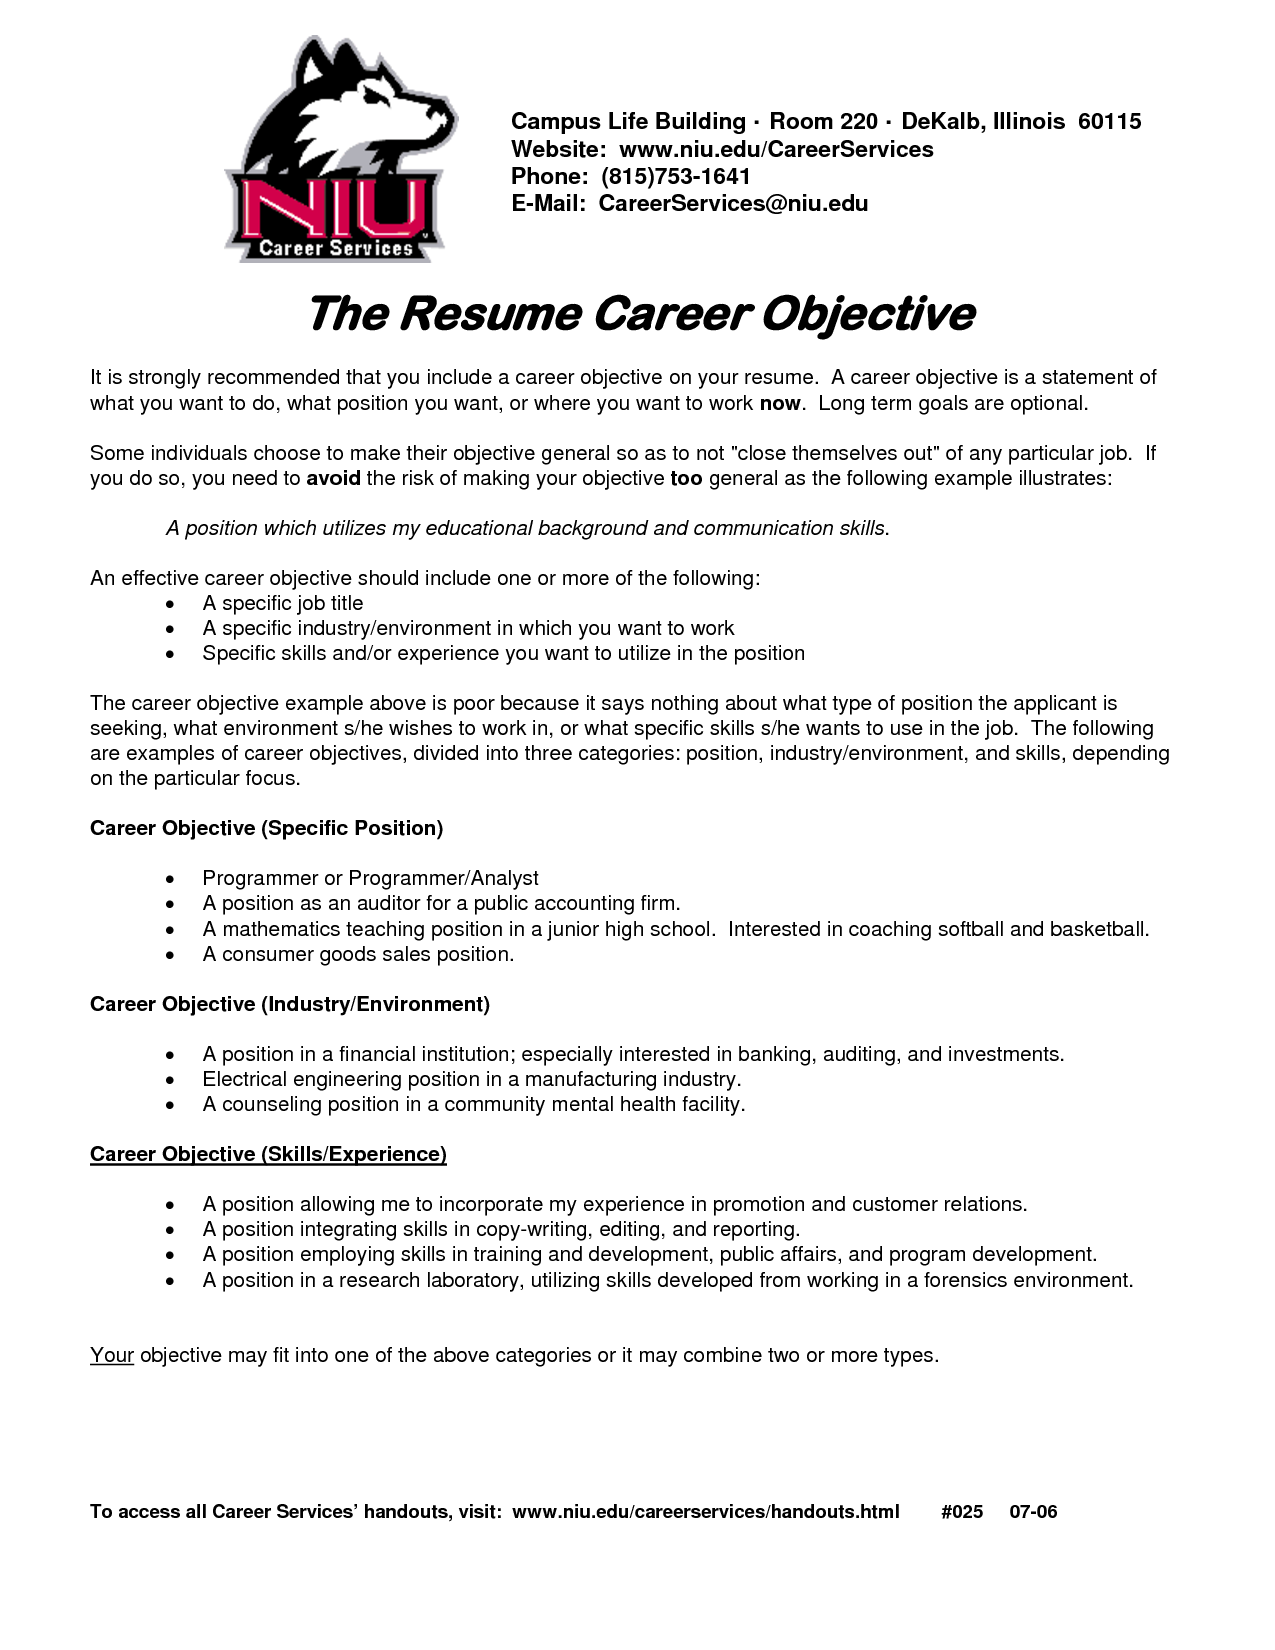 Best General Resume Objective Examples Best General Resume Objective ...